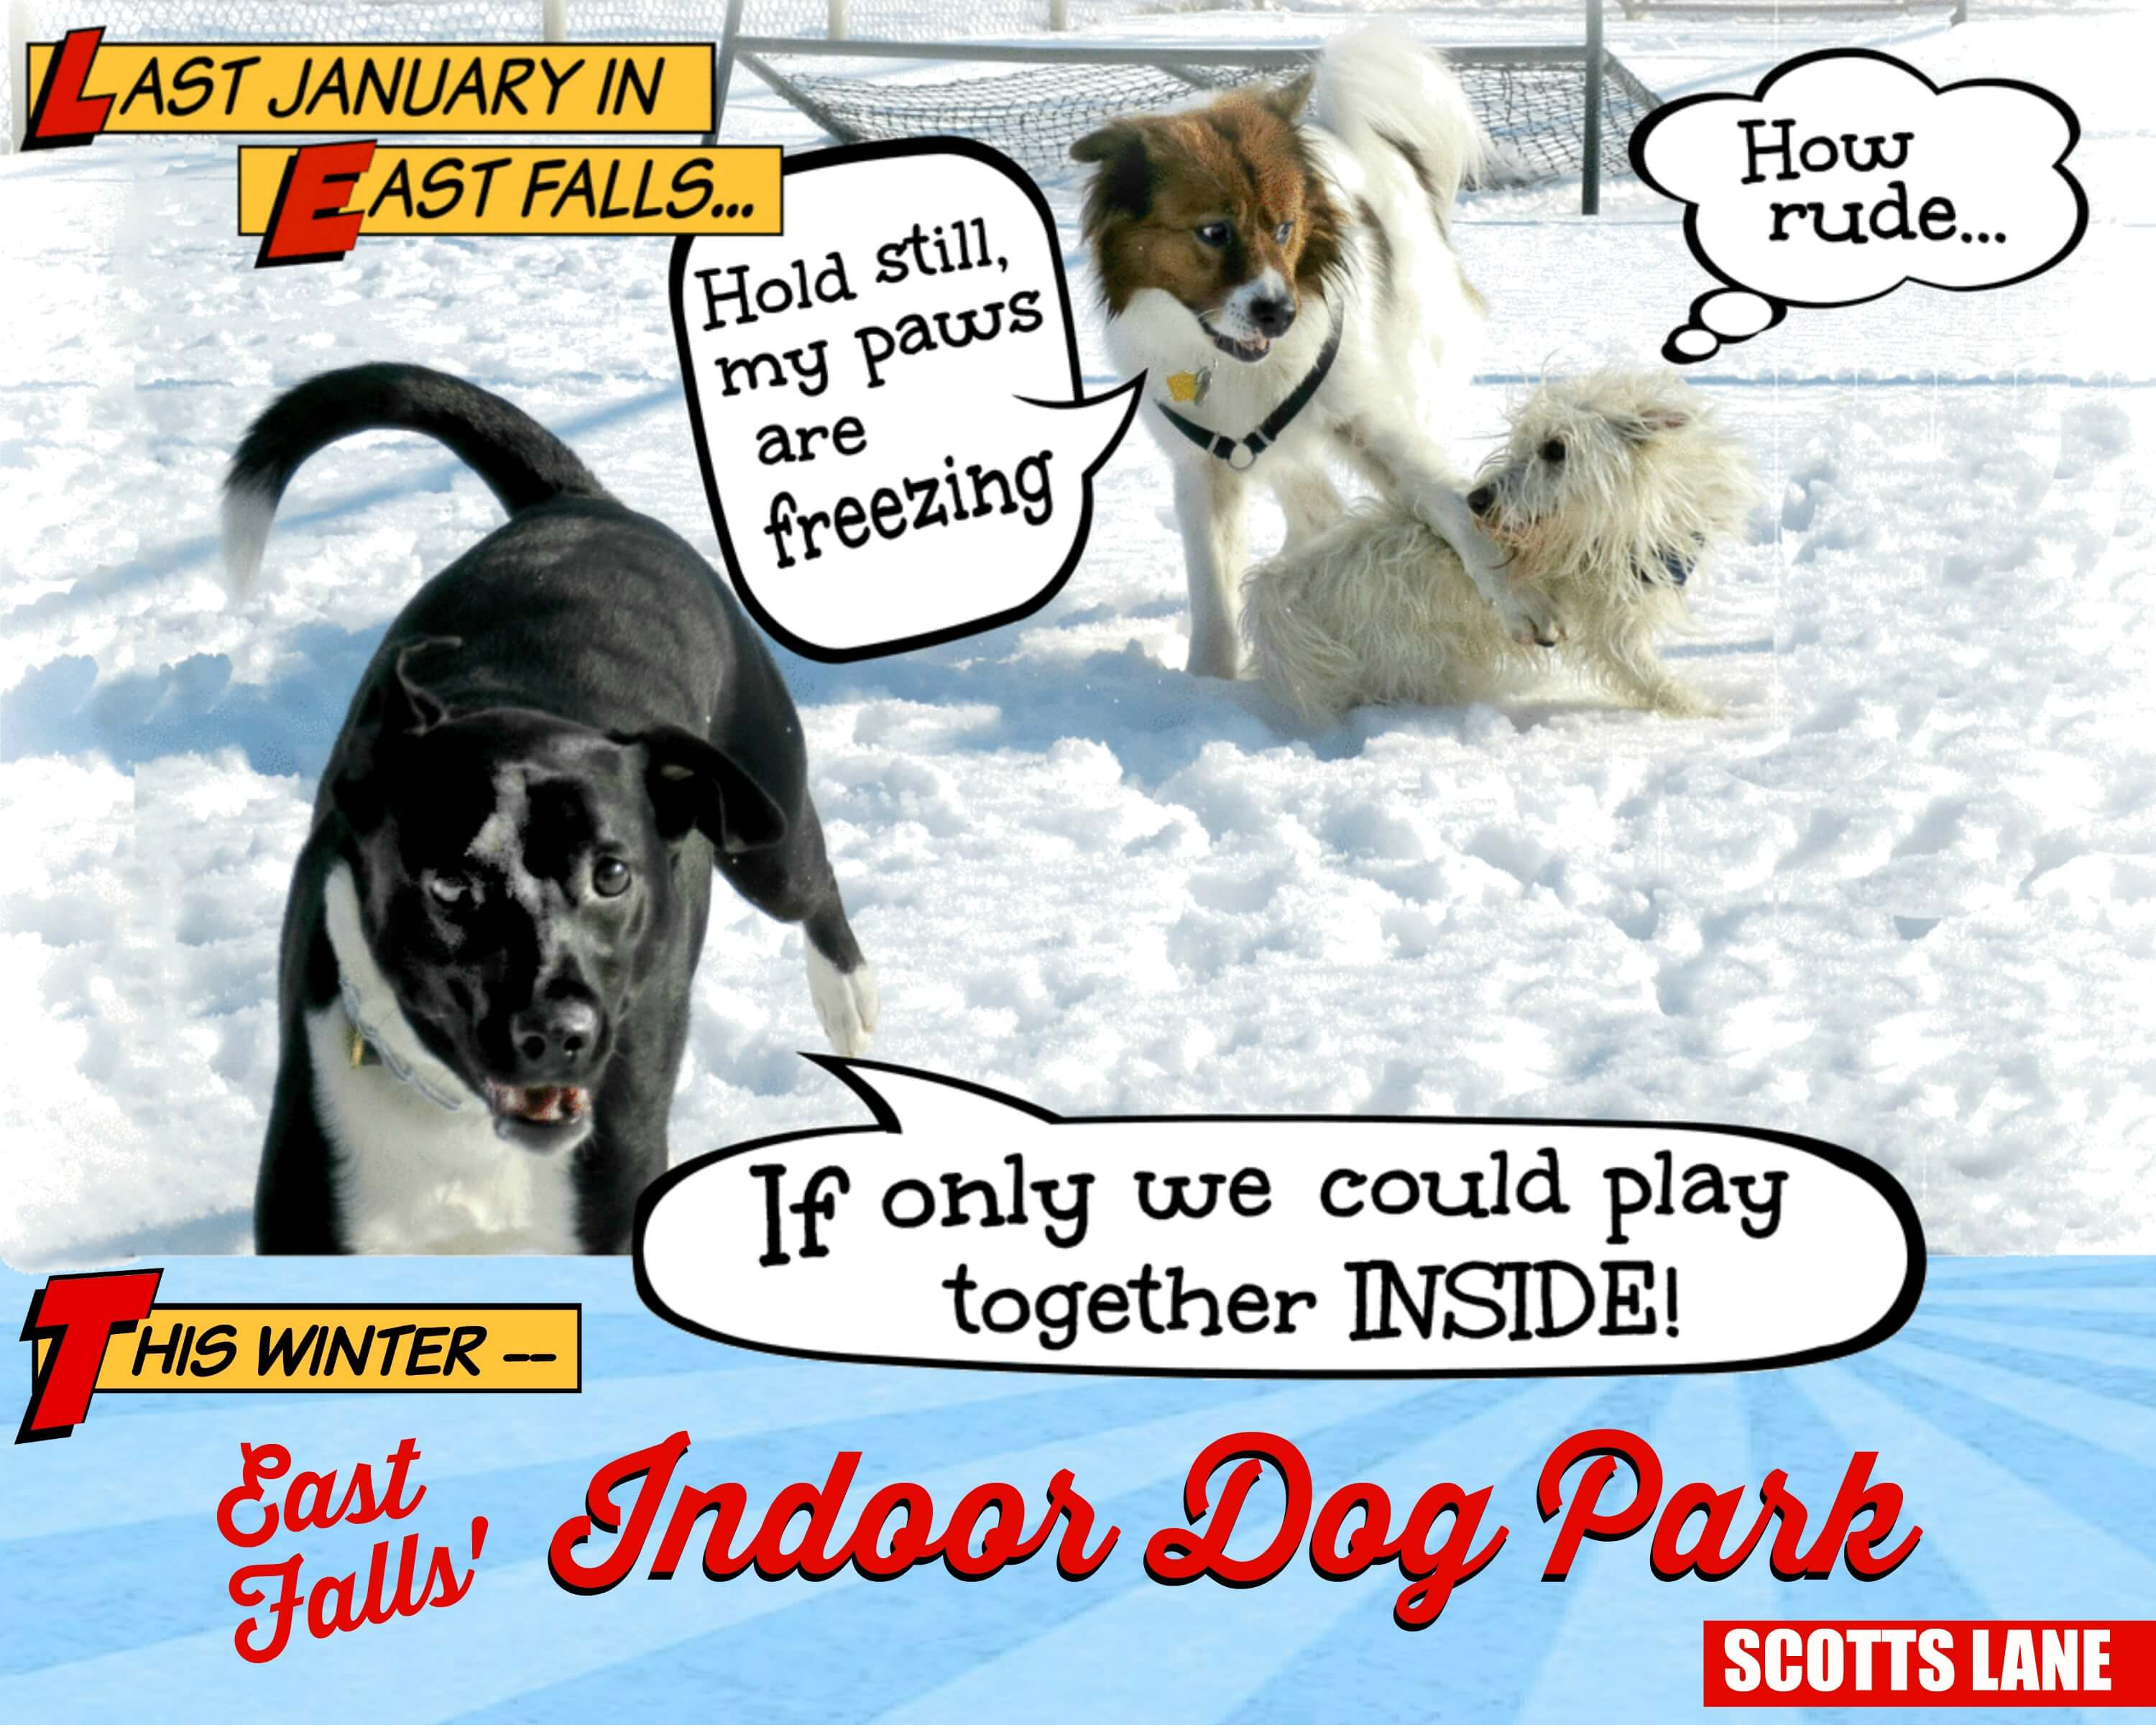 EastFallsLocal daisy wally ducky snow cartoon balloons text East Falls Indoor Dog Park